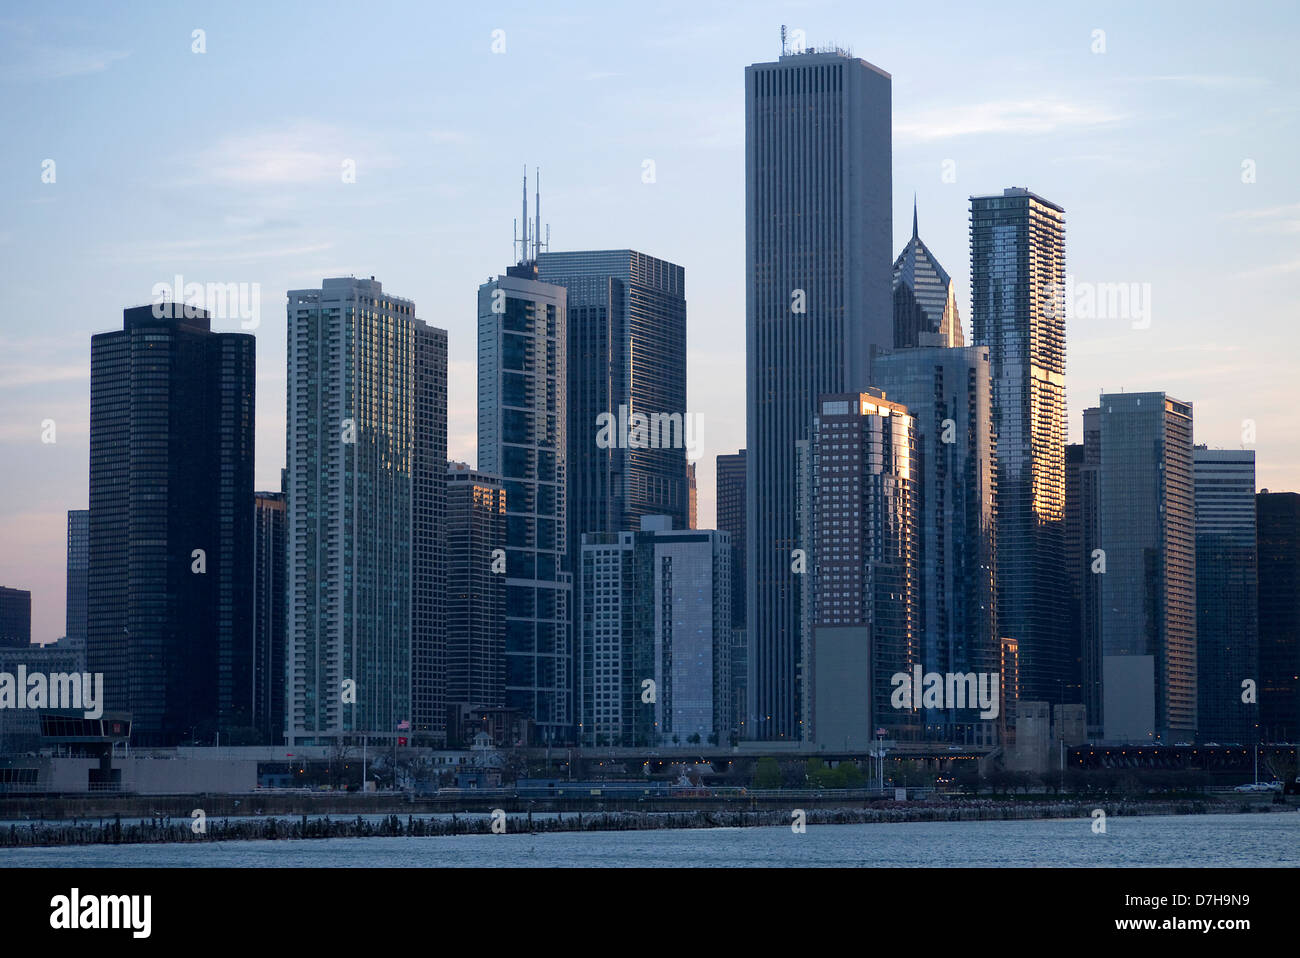 Chicago skyline from Navy Pier - Stock Image